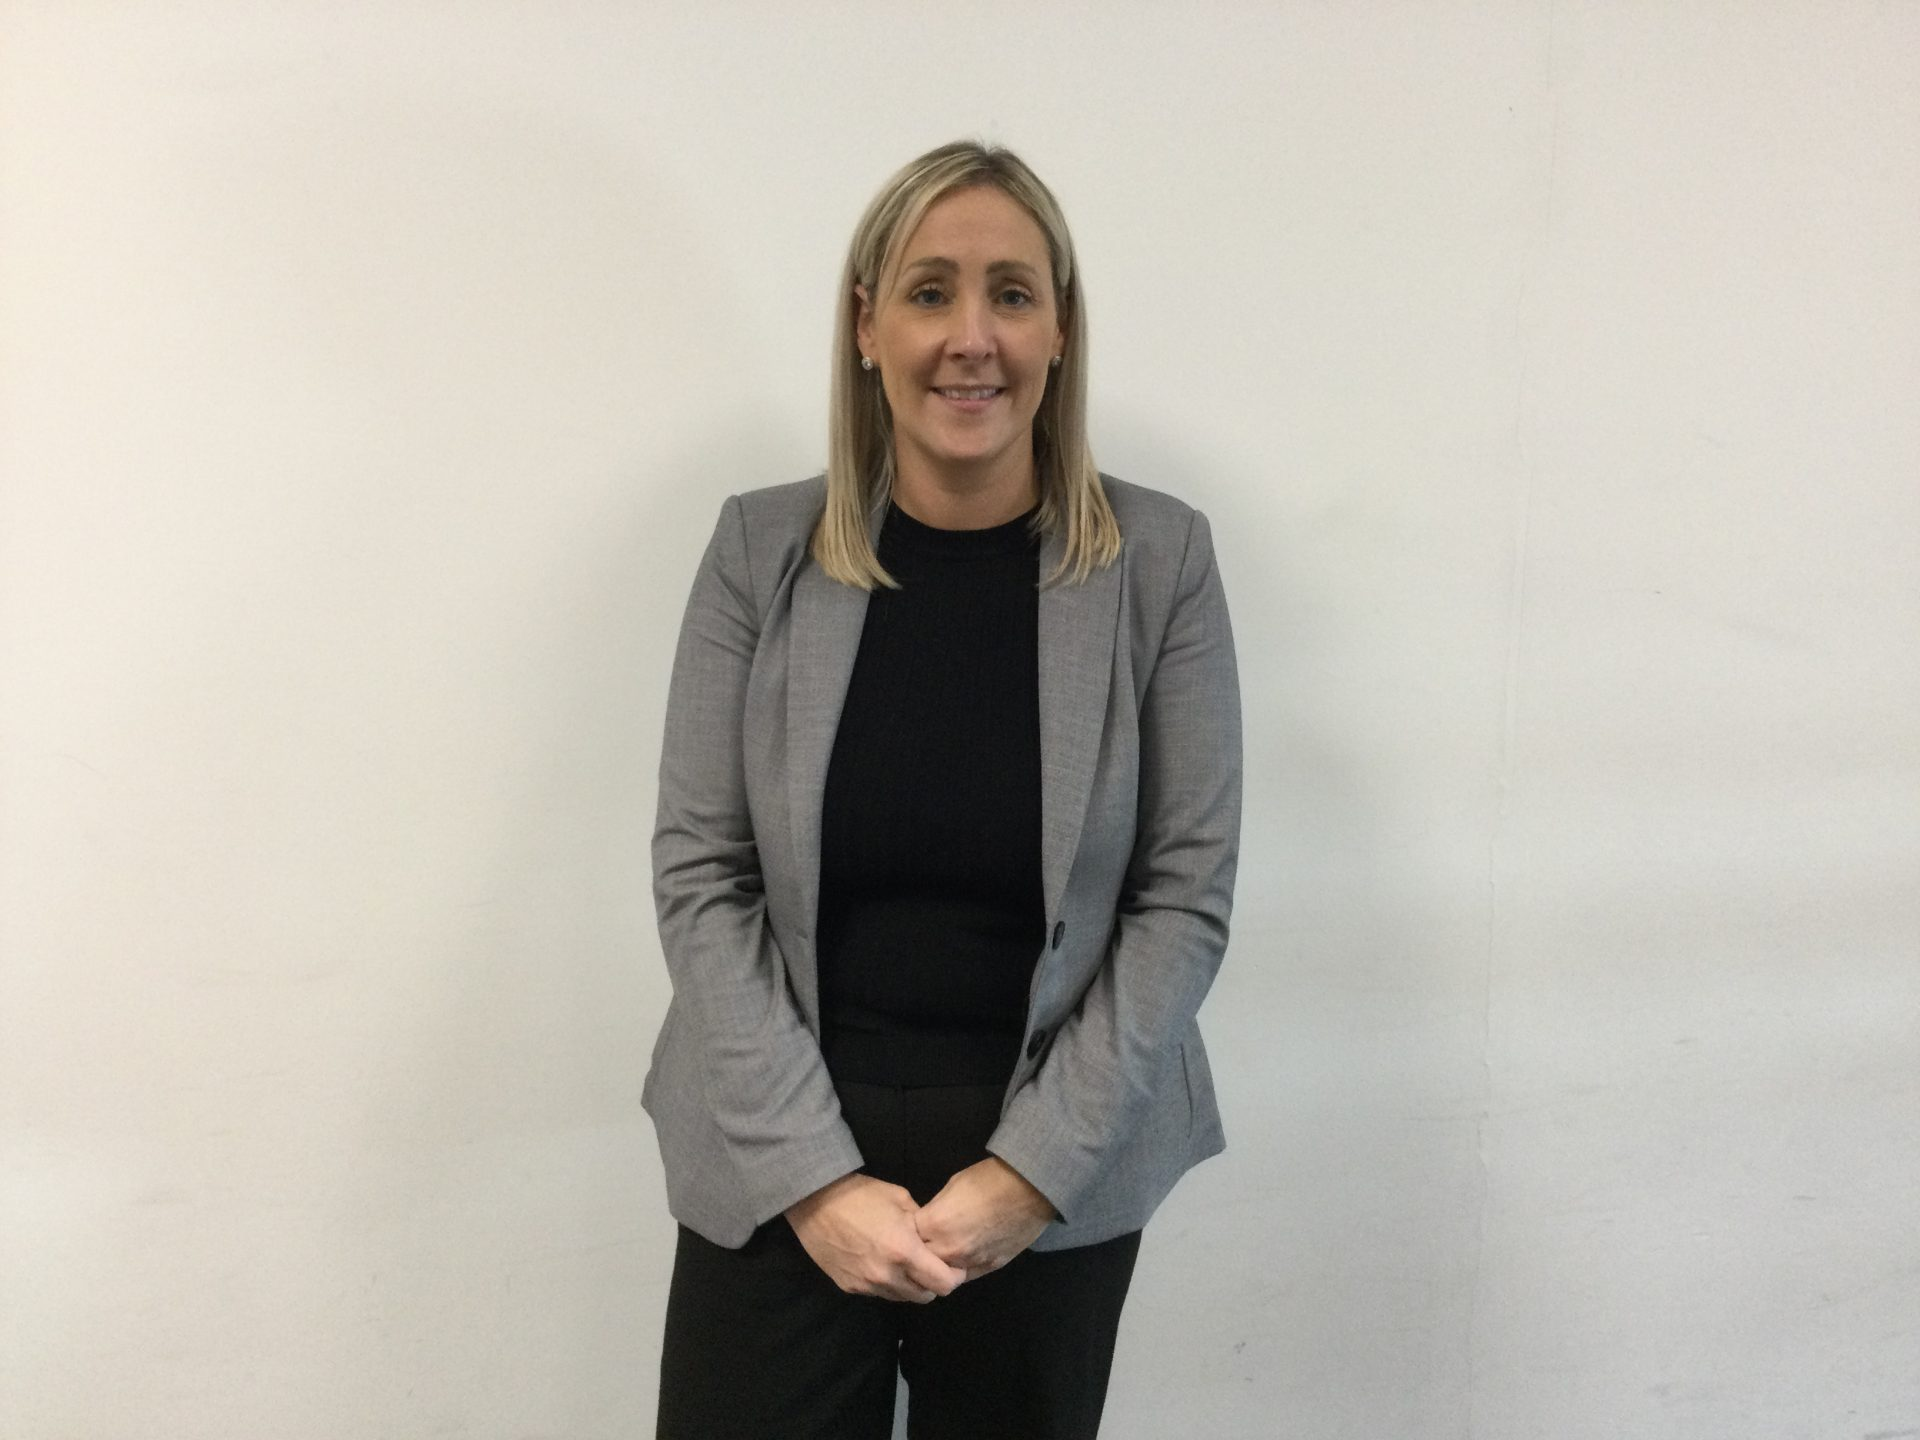 To mark World Patient Safety Day, Rachel Carter, Director of Patient Safety tells us more about her role